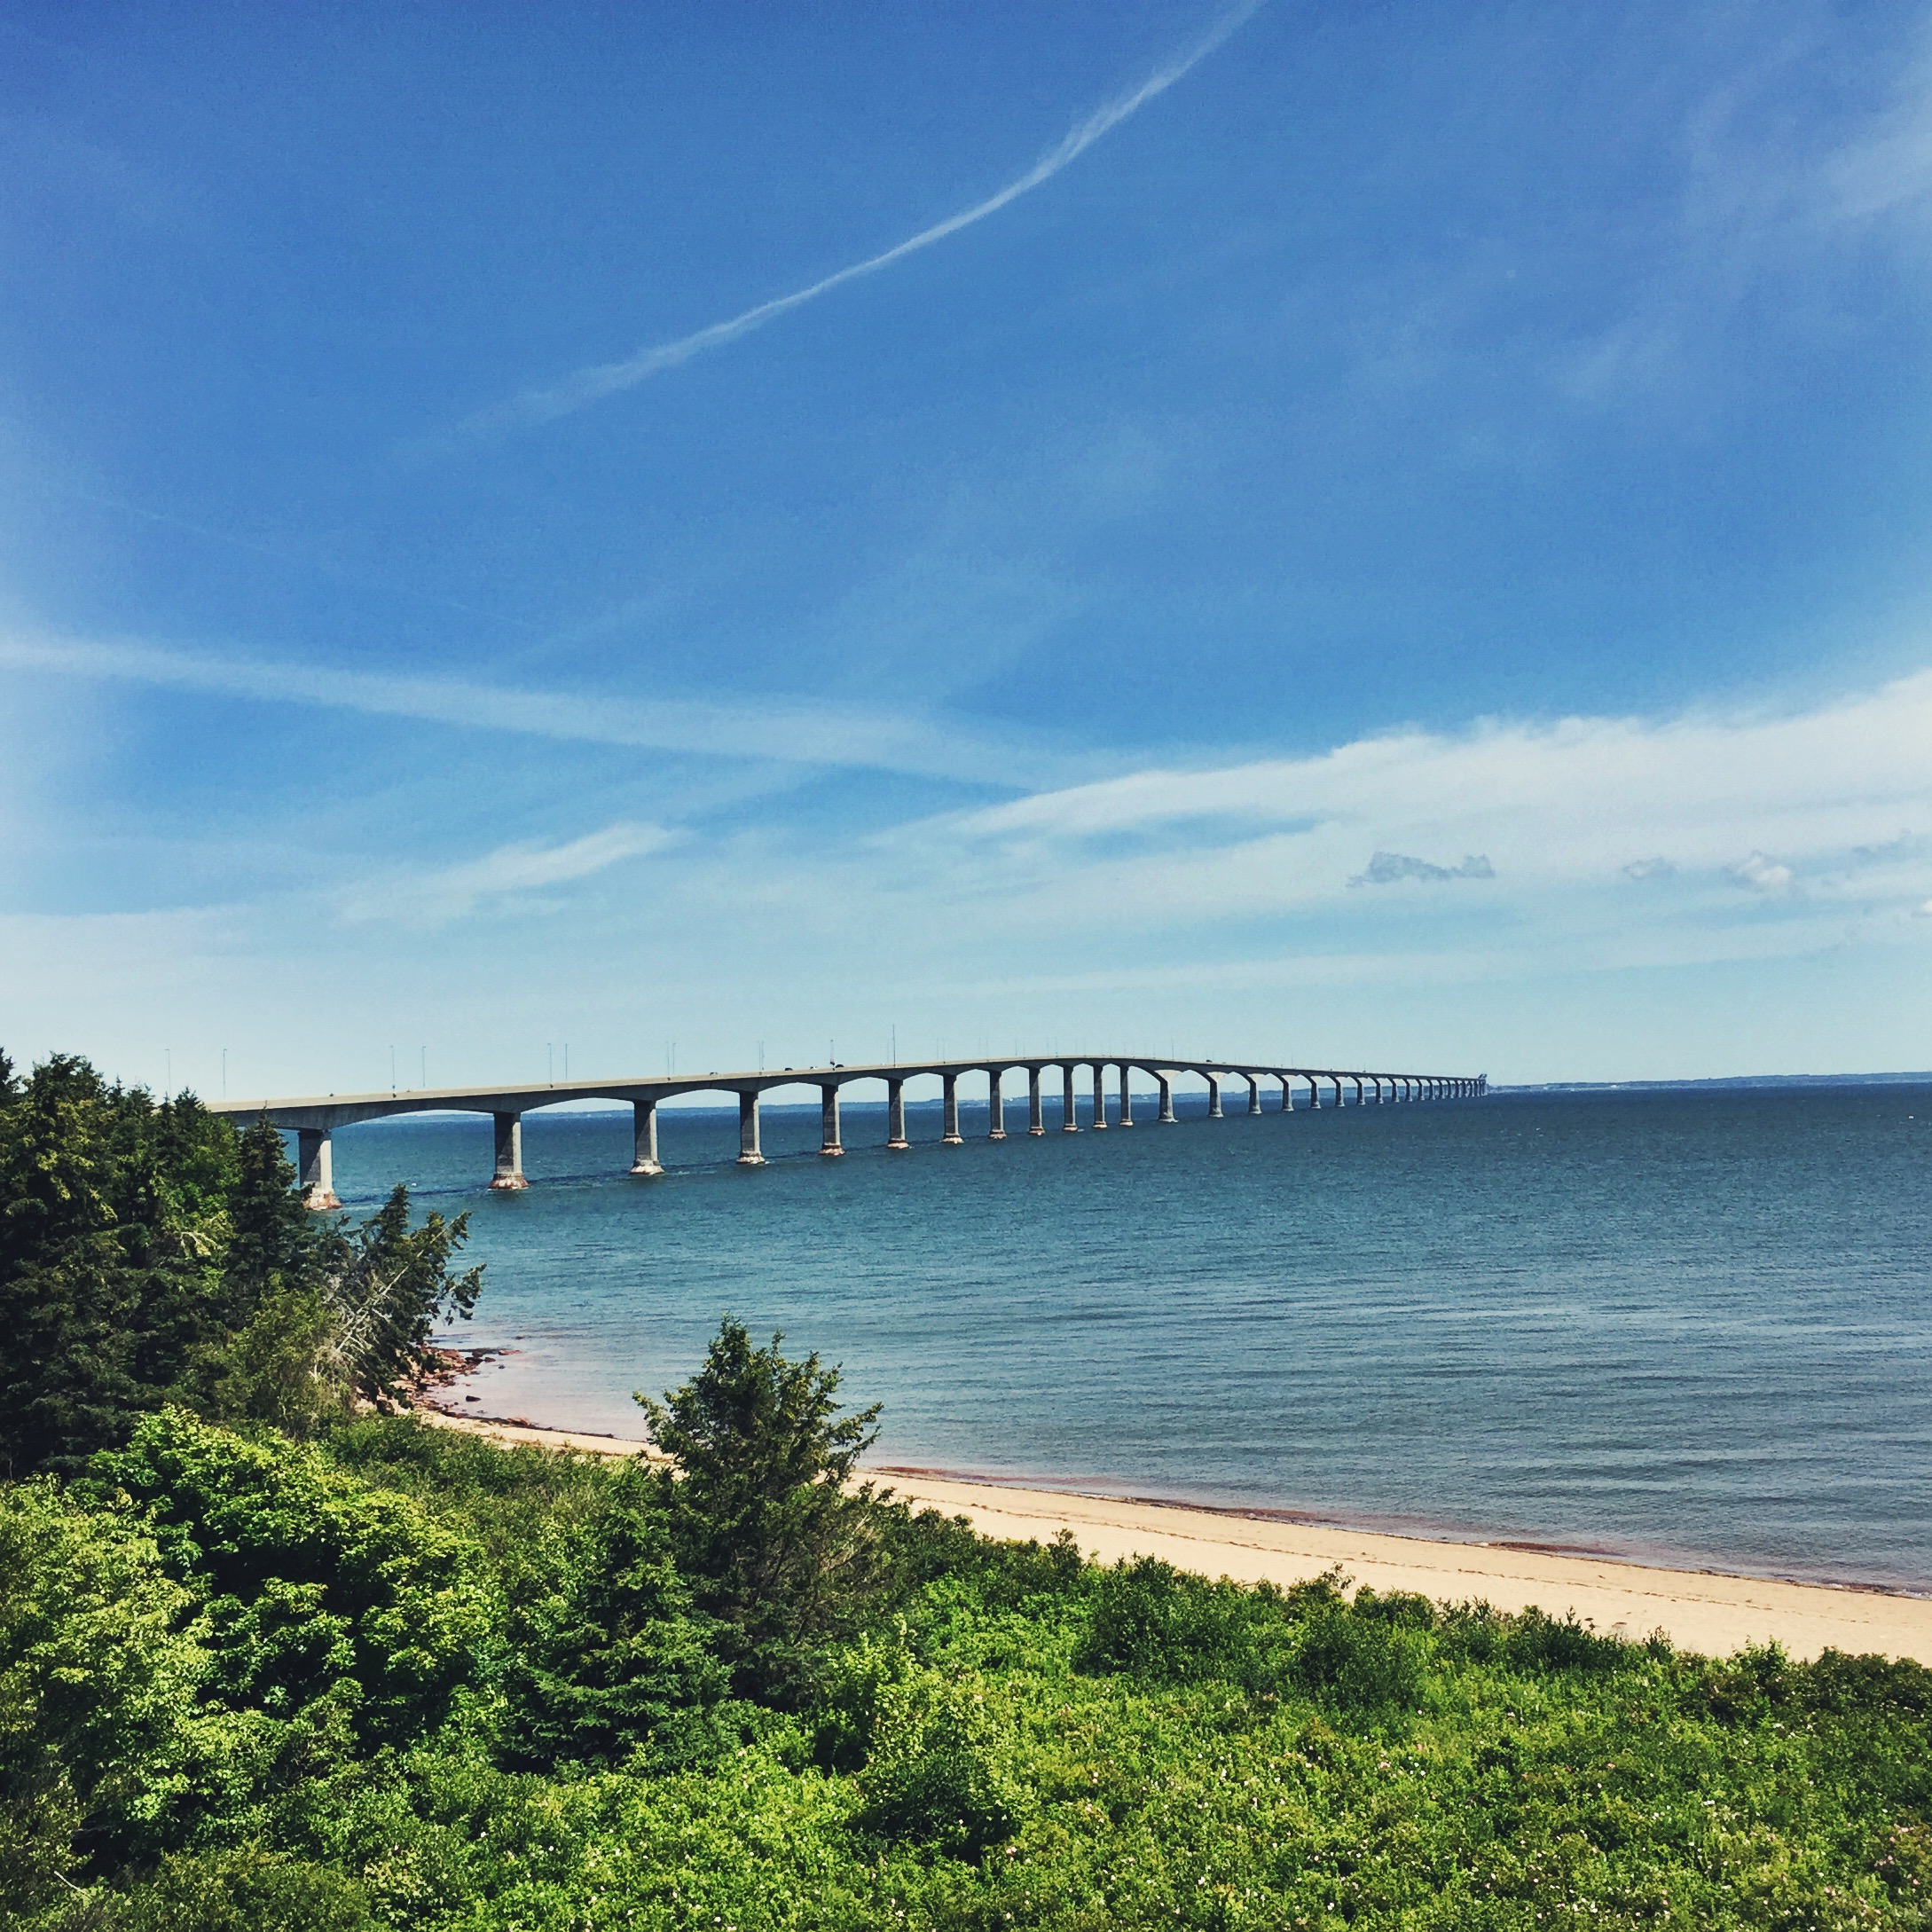 Teton will paddle to Prince Edward Island some day. The Confederation Bridge.